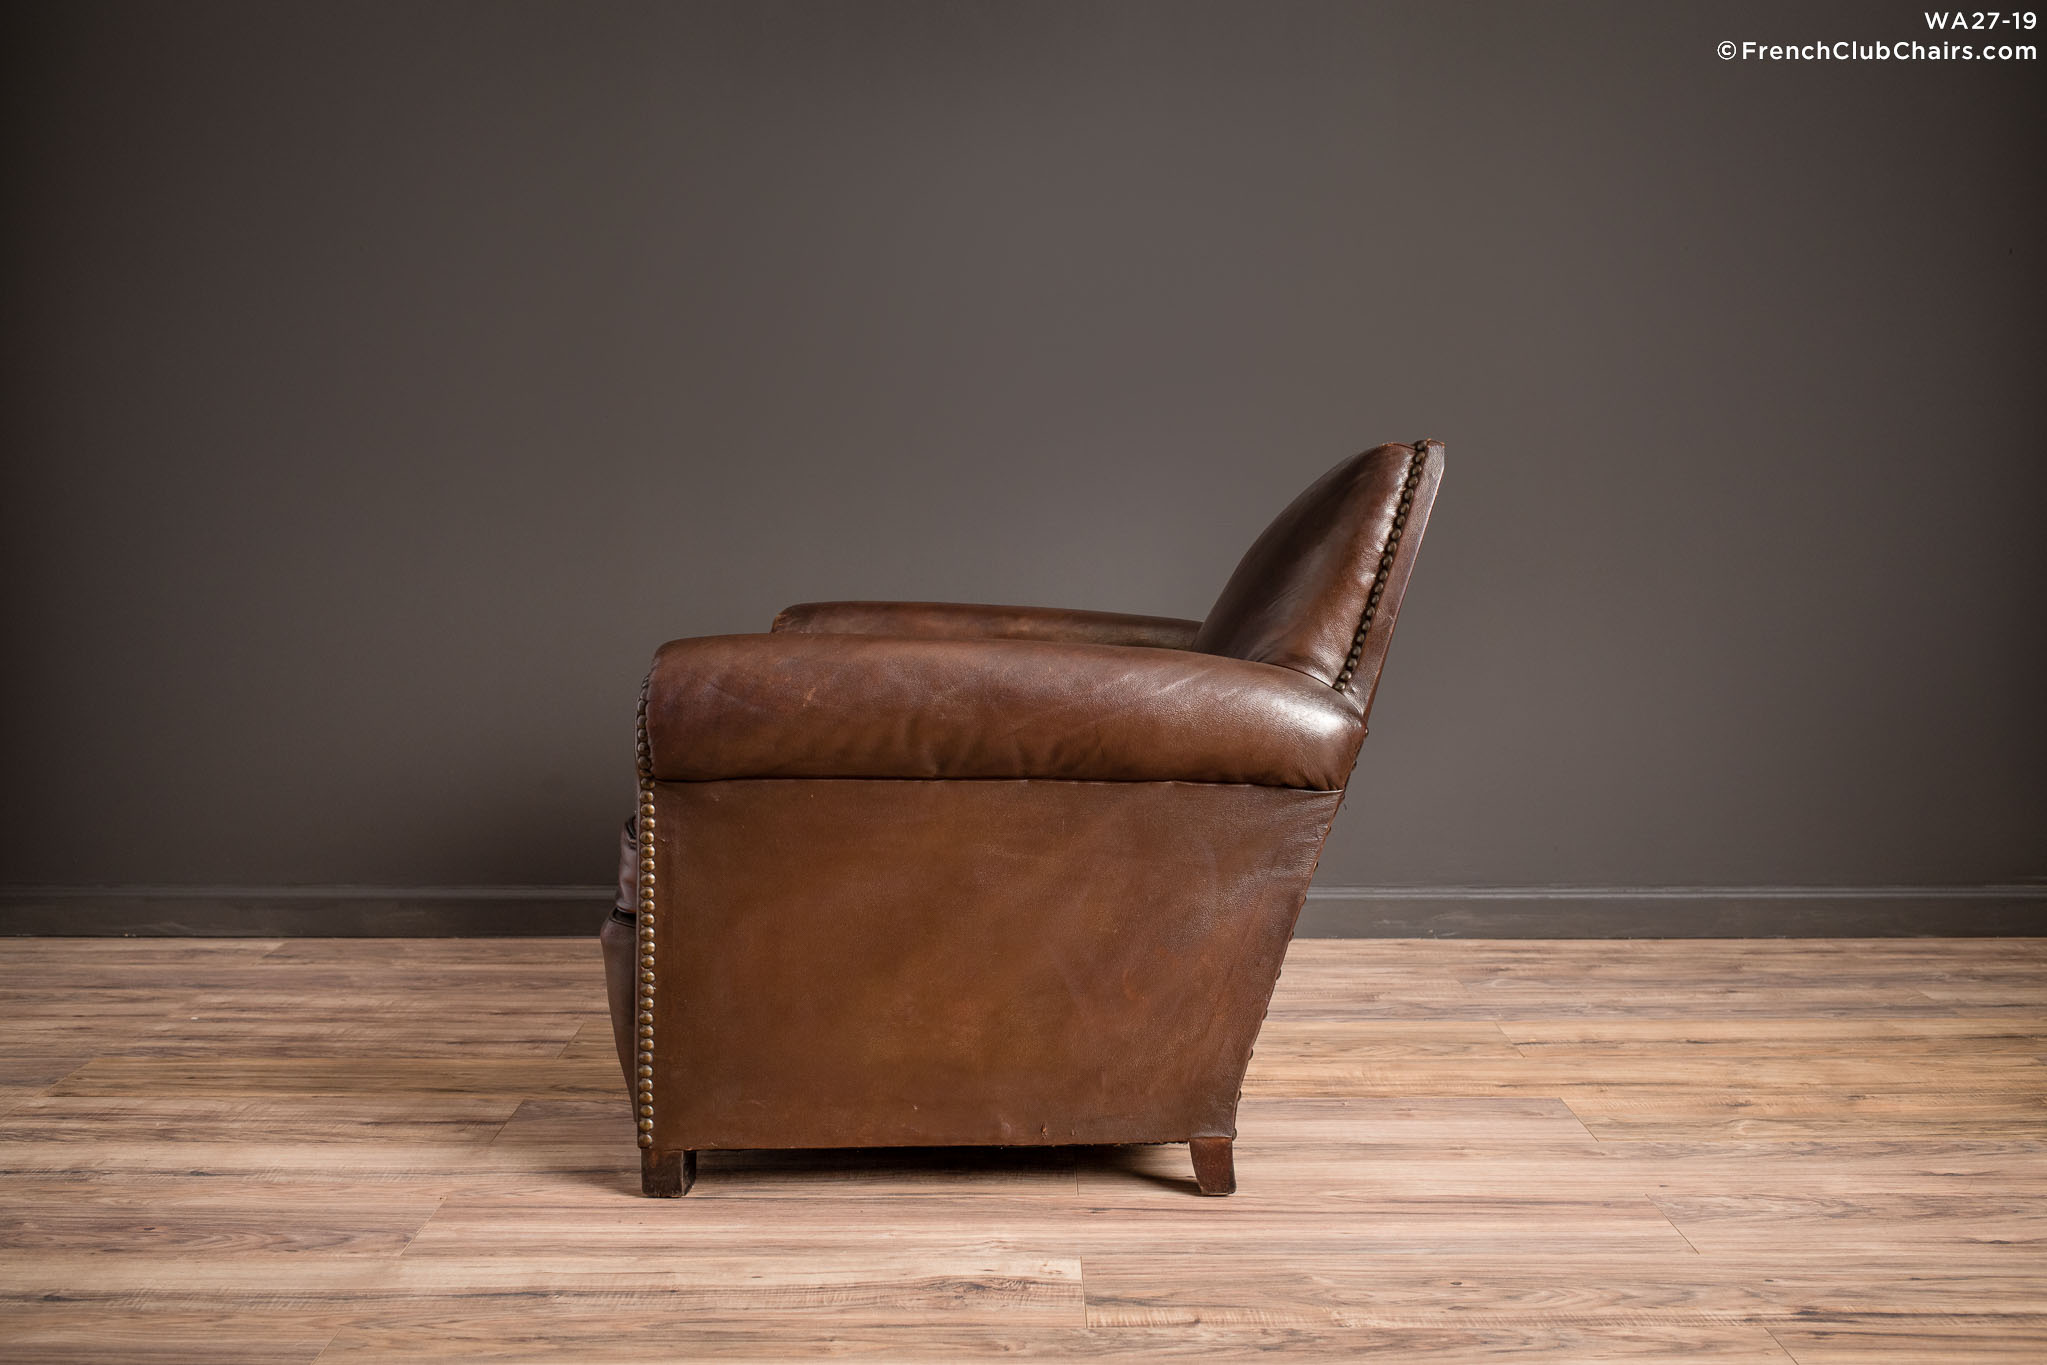 WA_27-19_The_Director_Nailed_High_Back_Solo_R_4LT-v01-williams-antiks-leather-french-club-chair-wa_fcccom